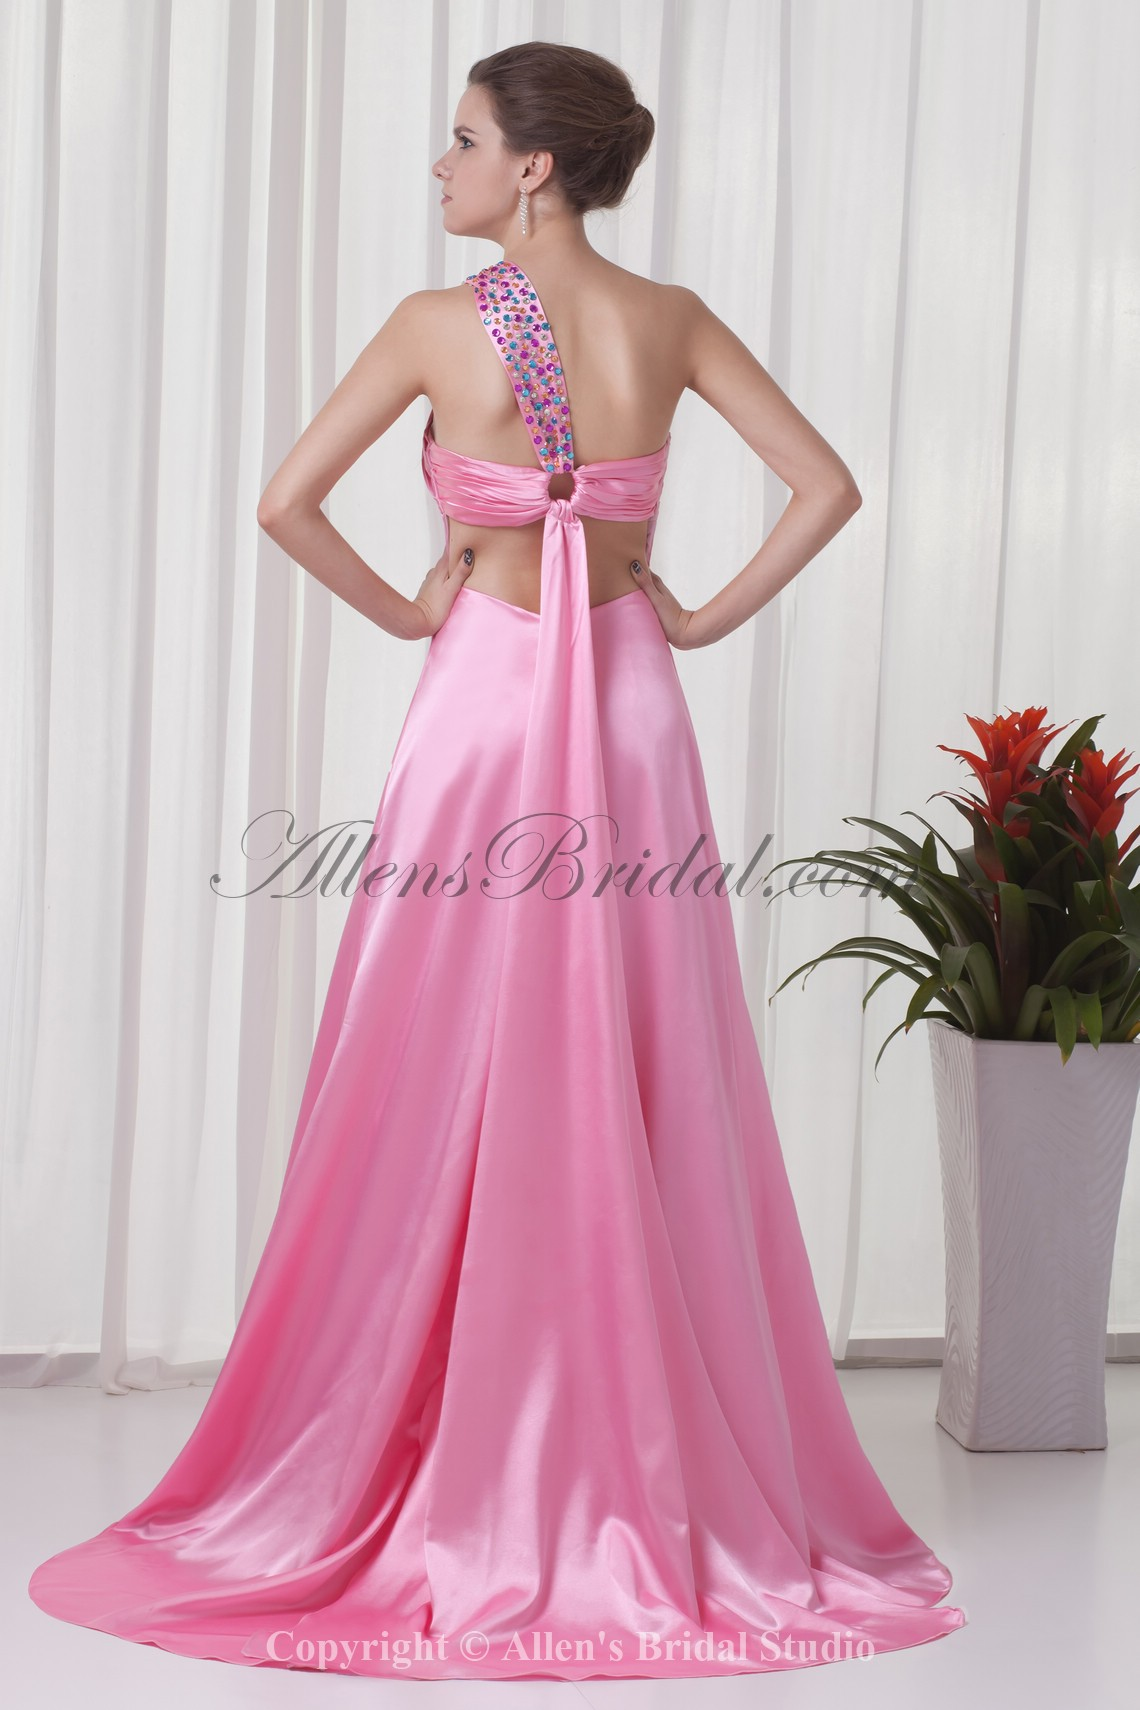 /302-2416/satin-one-shoulder-neckline-a-line-sweep-train-directionally-ruched-prom-dress.jpg